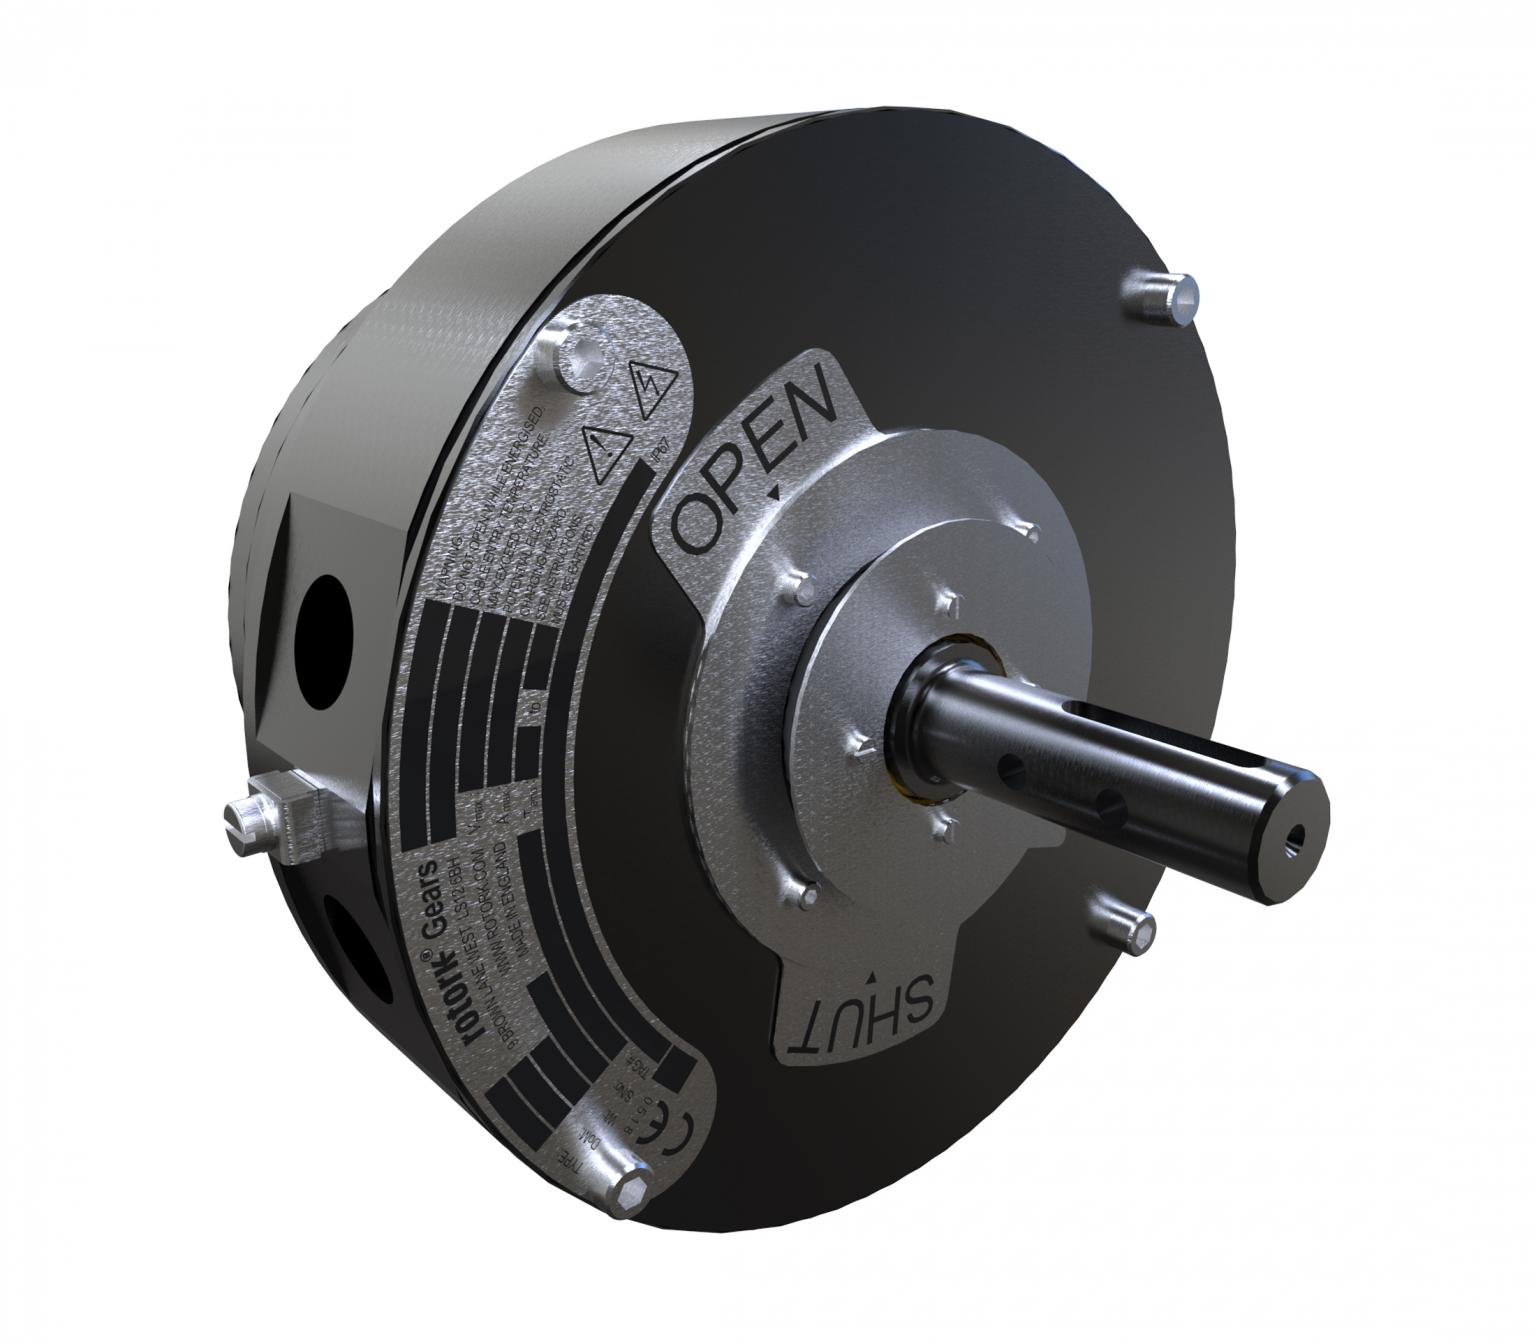 The Rotork Gears SPI Smart Position Indicator